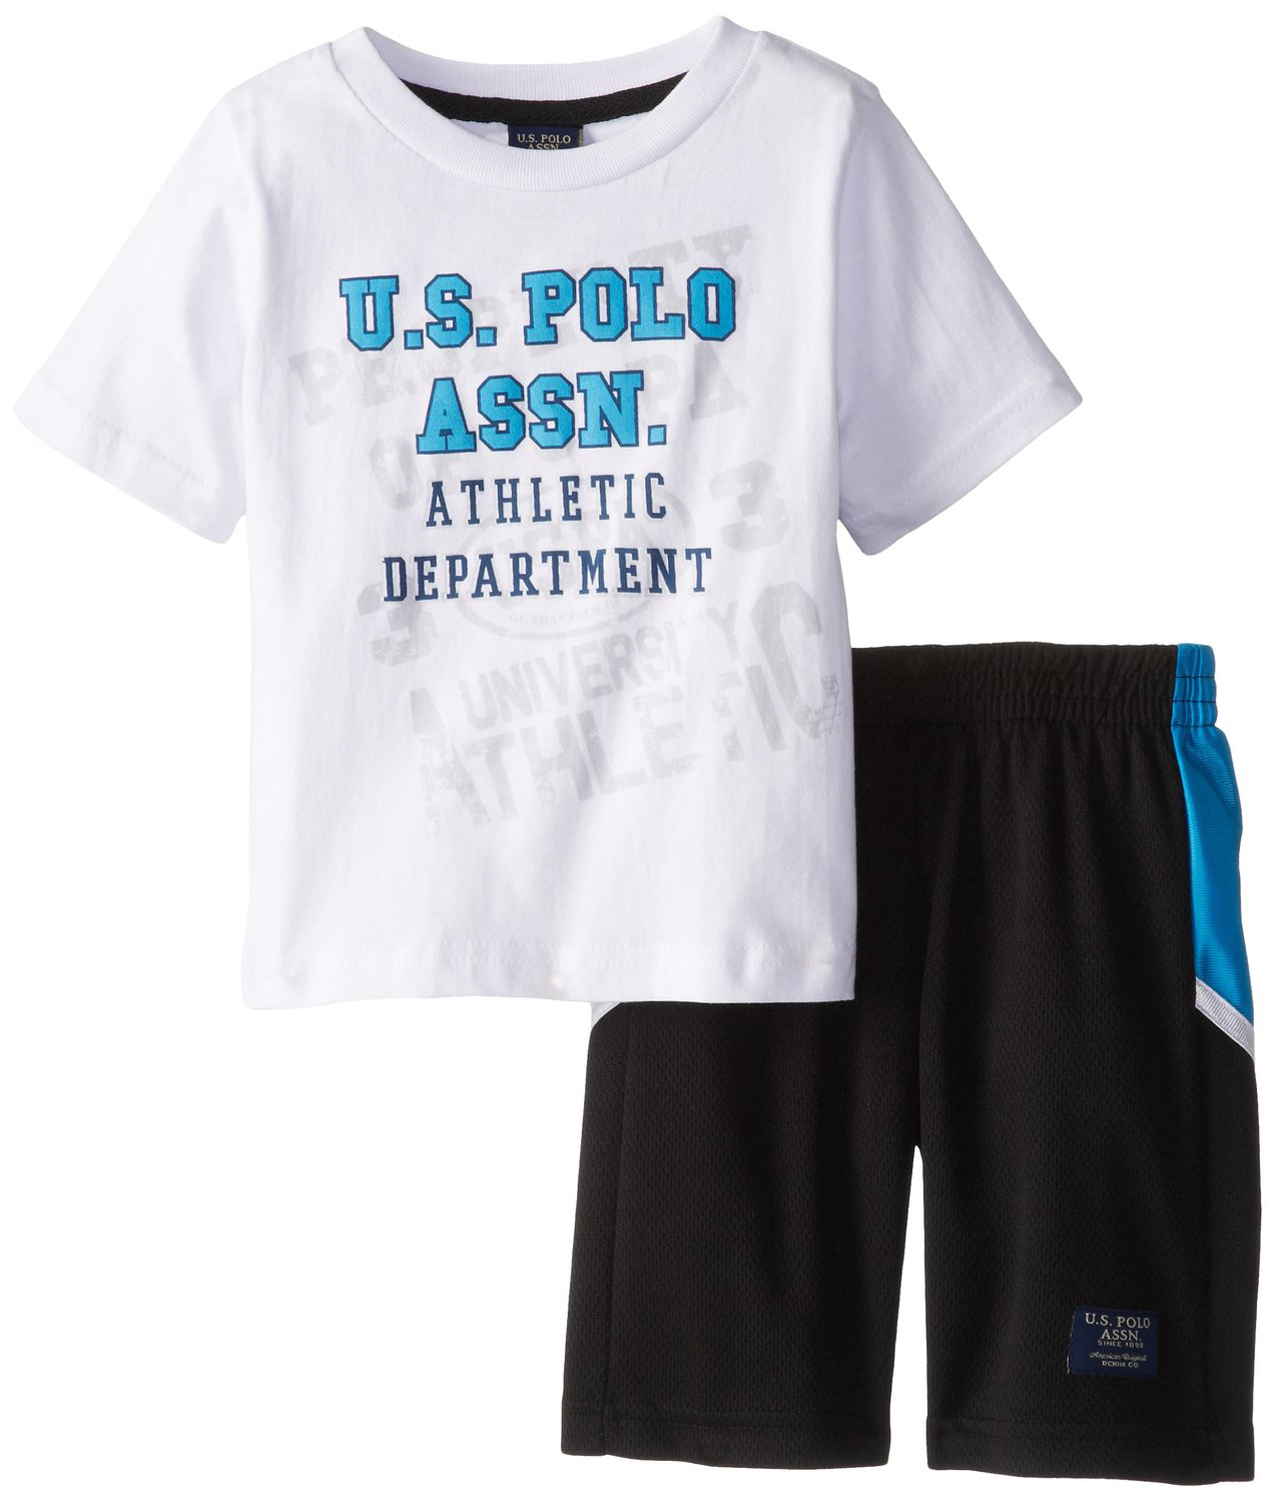 U.S. Polo Assn. Toddler Boys 2 Piece Athletic T-shirt Basketball Mesh Shorts Set at Sears.com